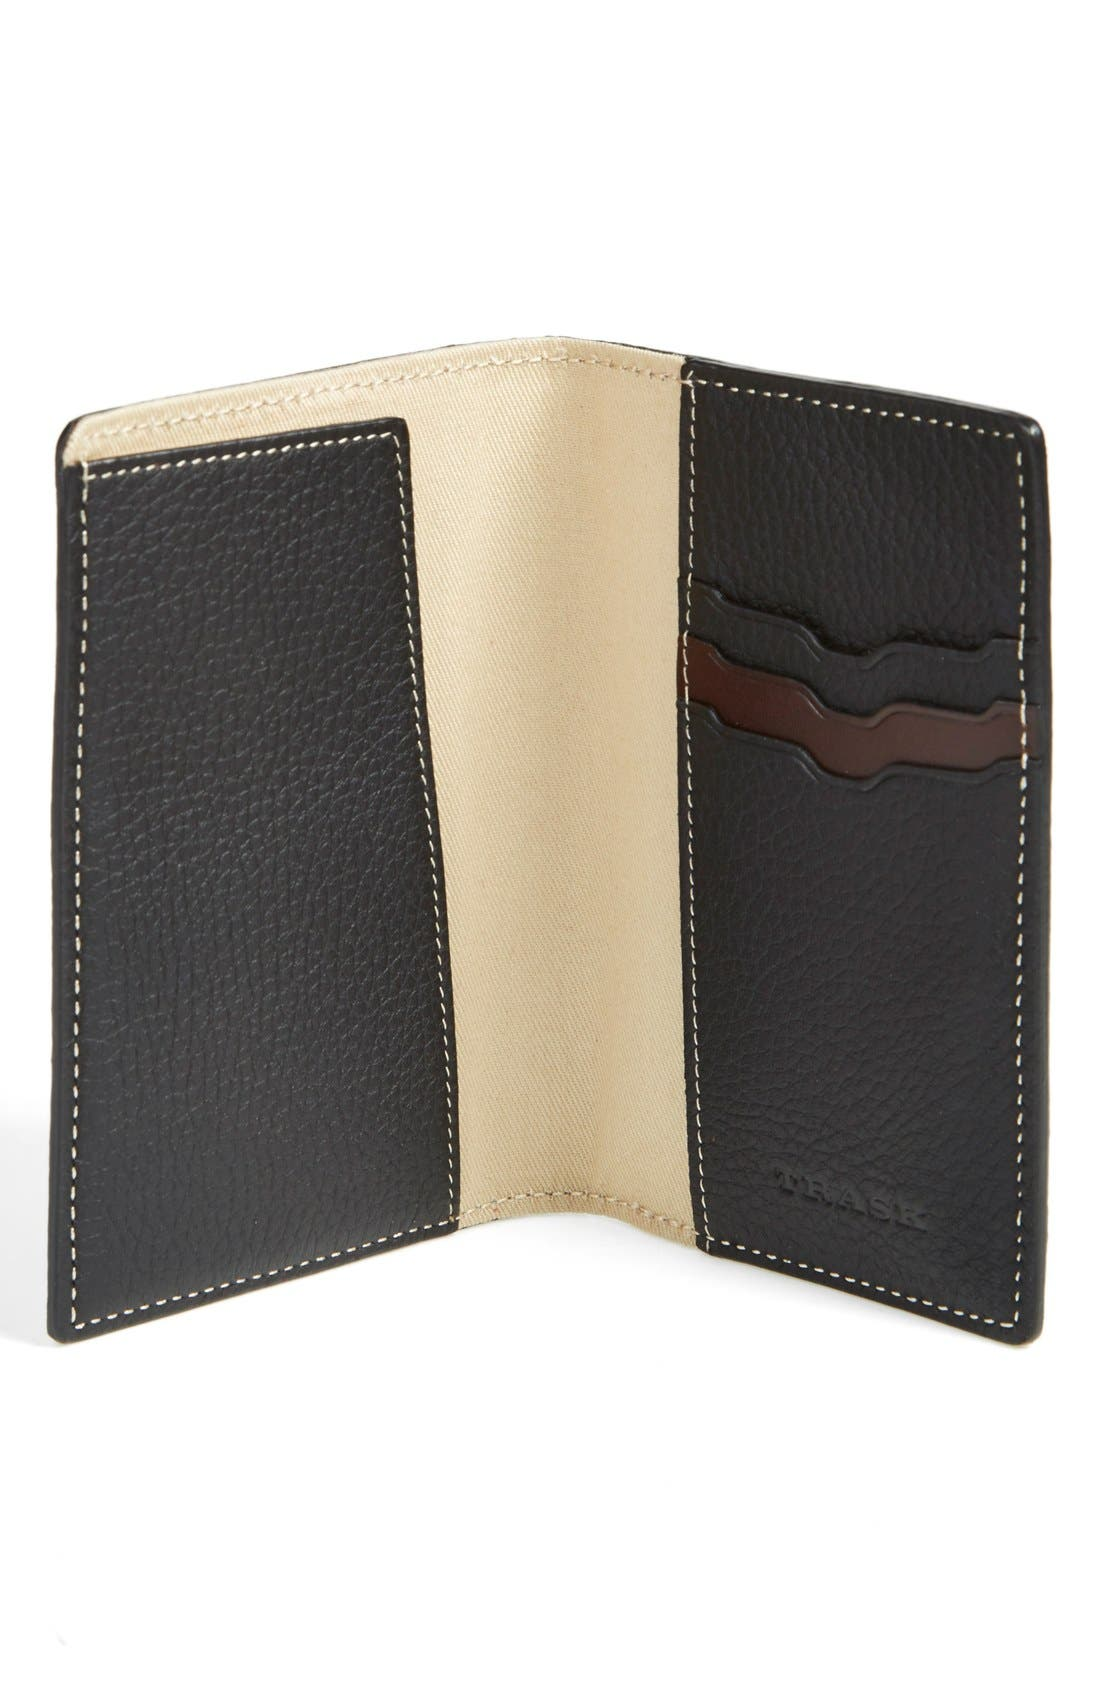 'Jackson' Norwegian Elk Leather Passport Holder,                             Alternate thumbnail 3, color,                             Black Norwegian Elk